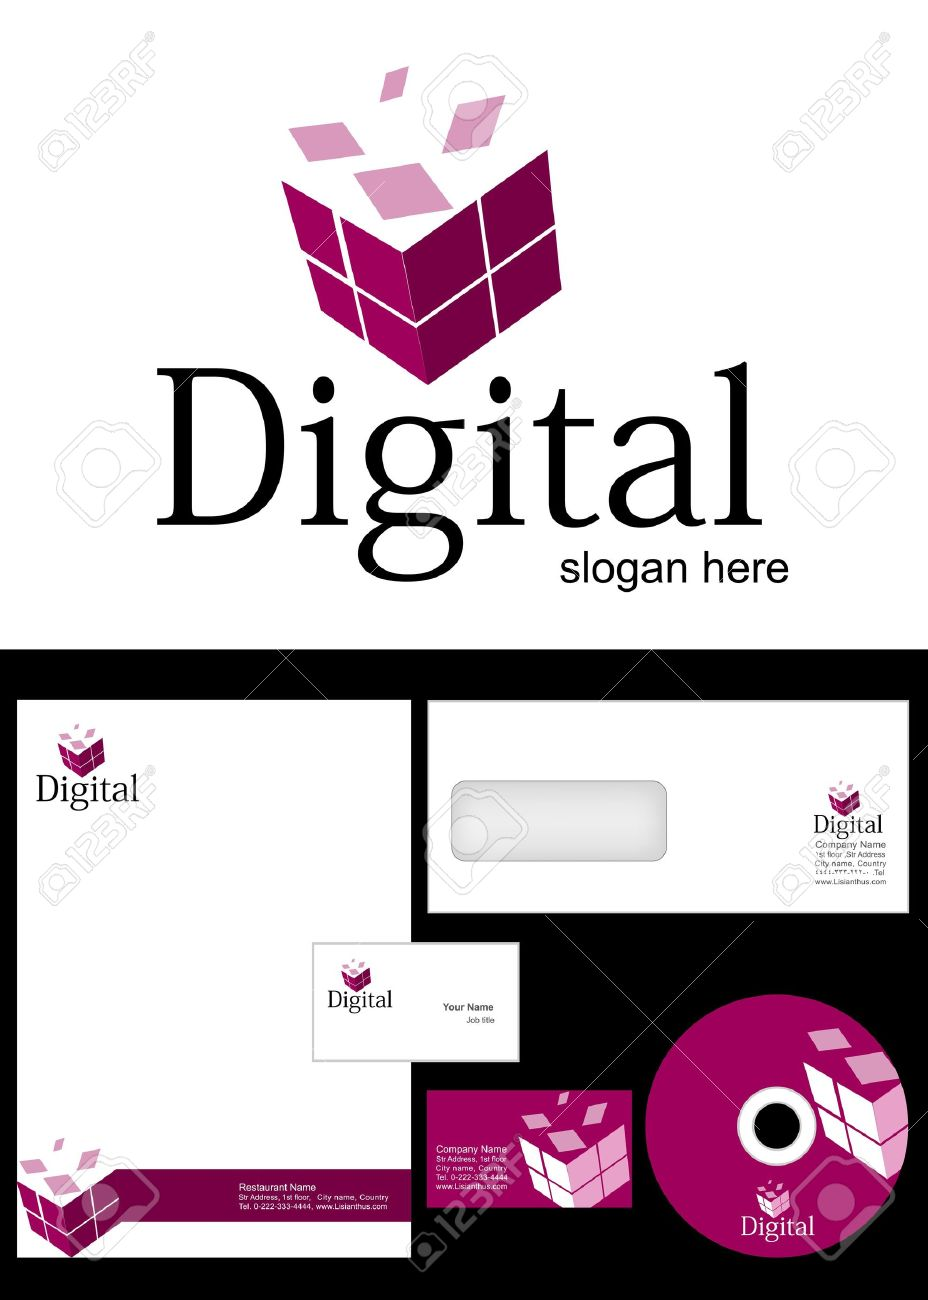 Digital Logo Design and corporate identity package including logo, letterhead, business card, envelope and cd label. Stock Vector - 12959748